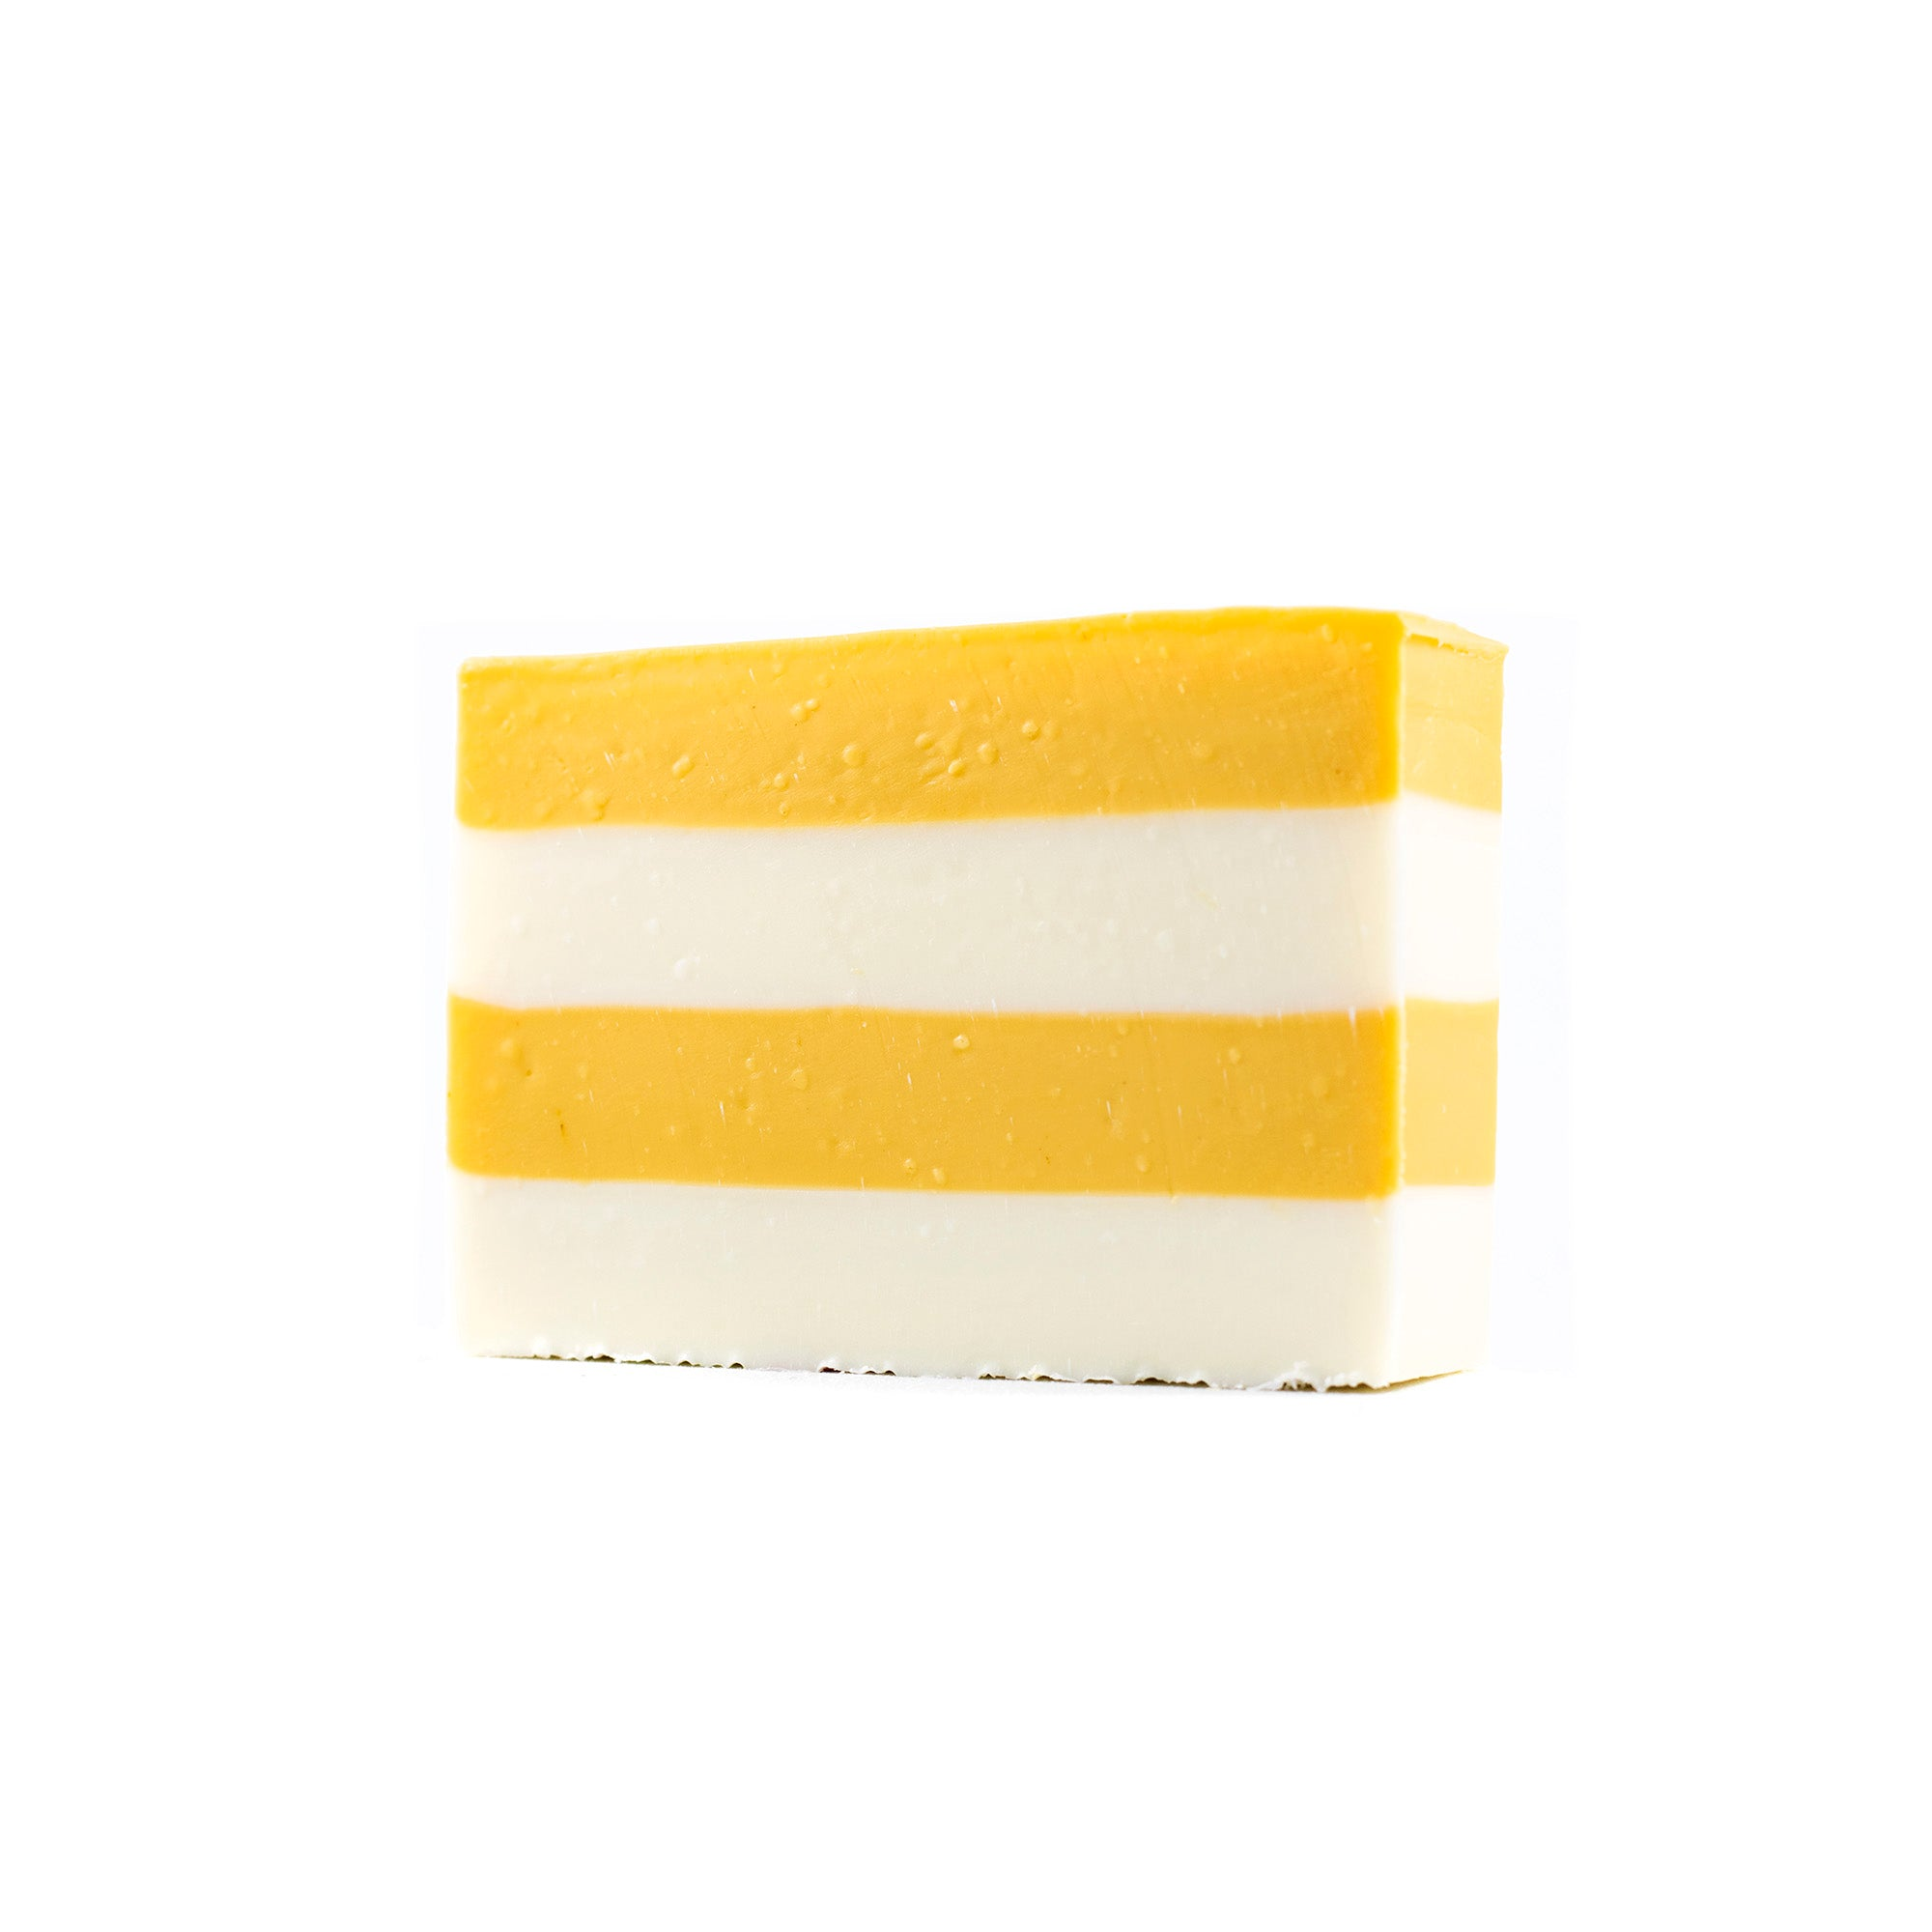 4 alternating layers of yellow and white in a banana coconut scented Bar of Soap.